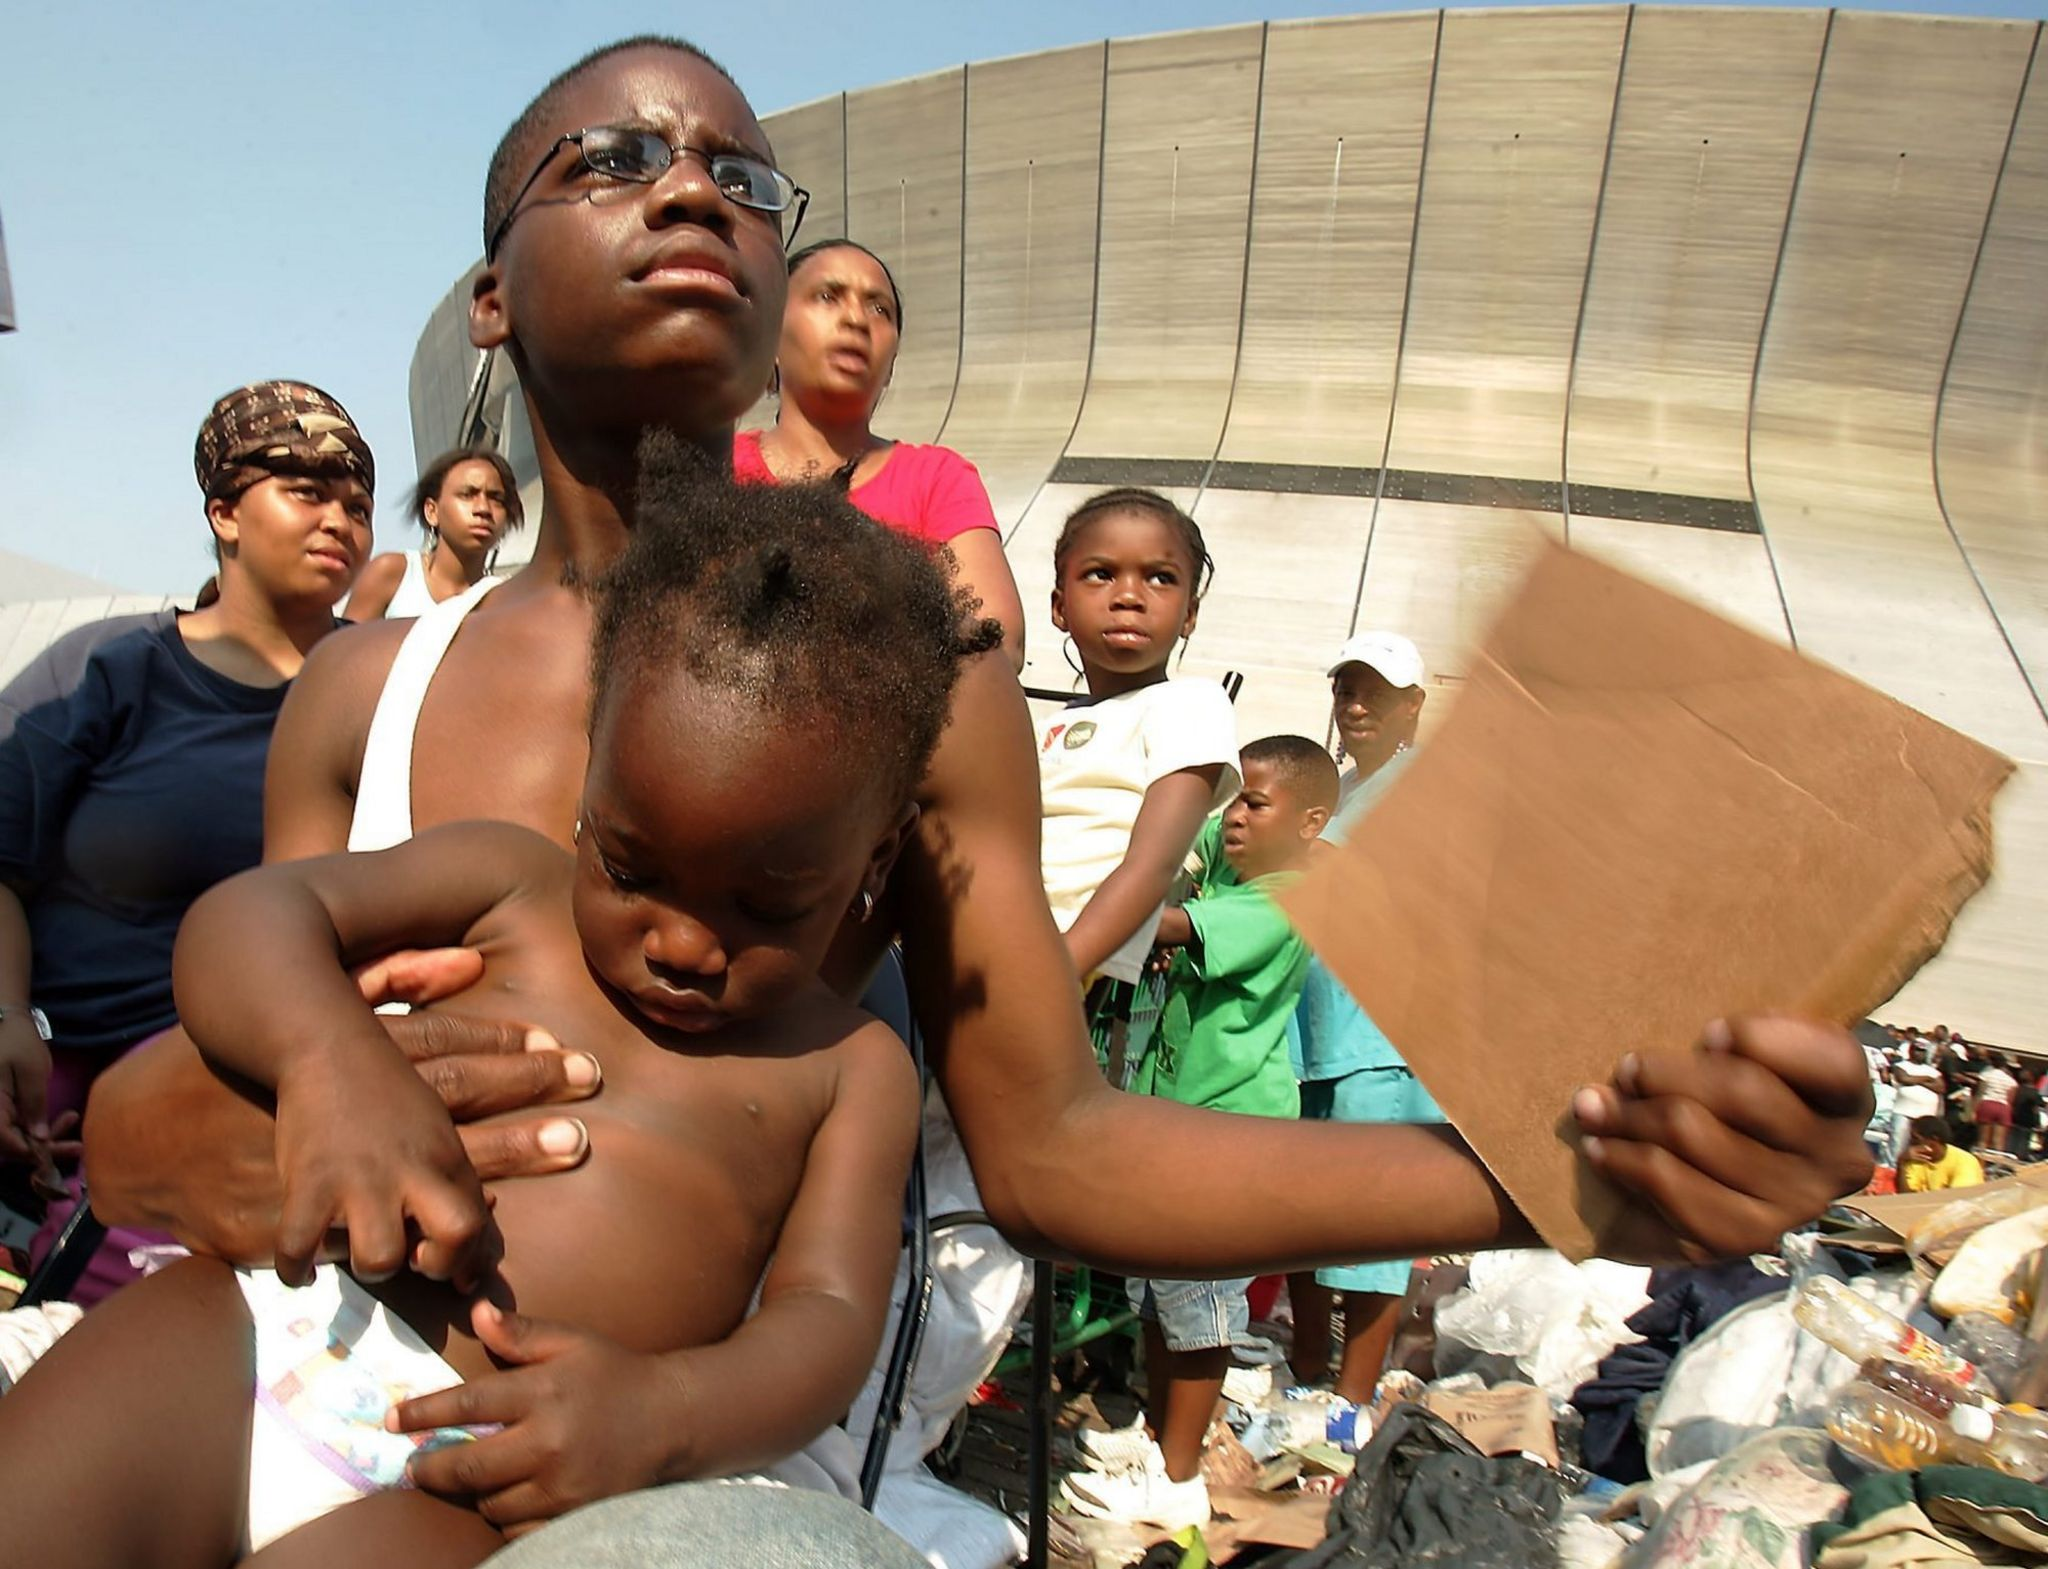 A young boy holds a smaller child outside the New Orleans Superdome